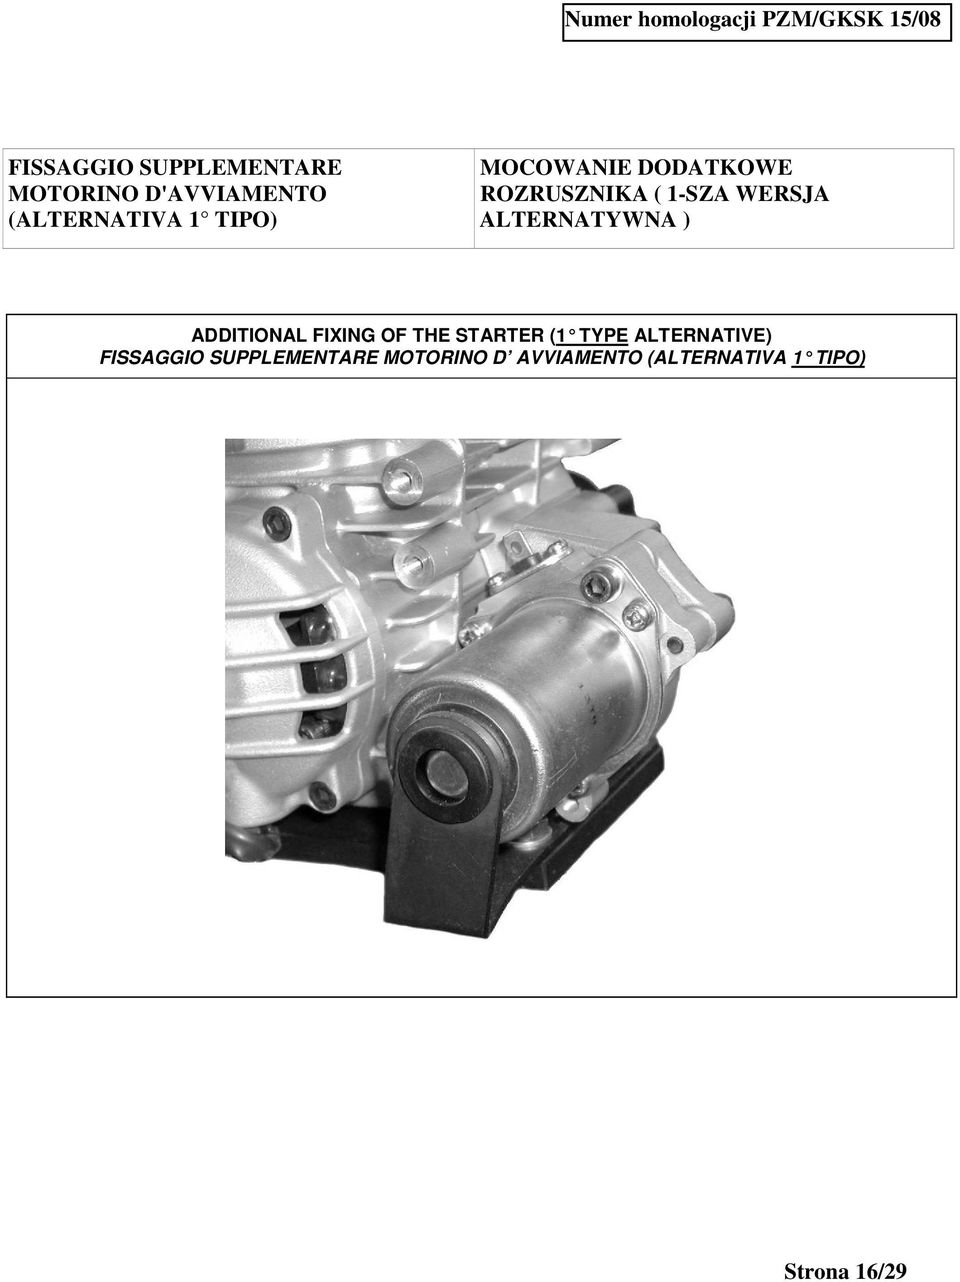 ) ADDITIONAL FIXING OF THE STARTER (1 TYPE ALTERNATIVE) FISSAGGIO